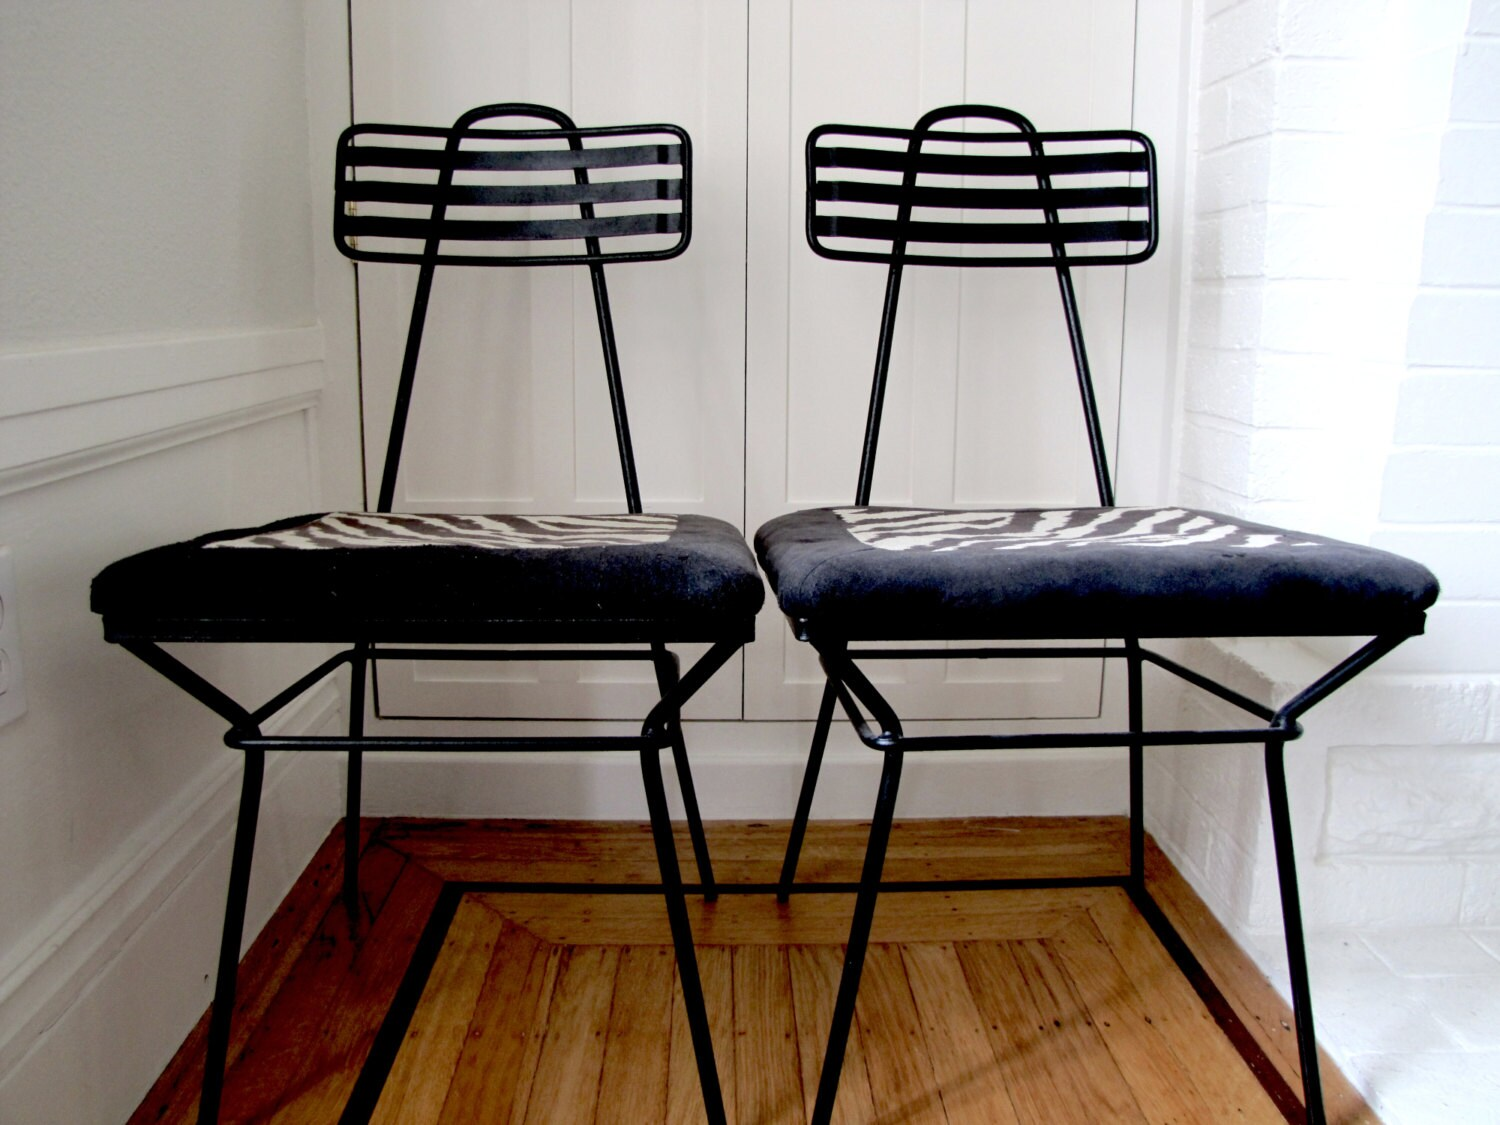 atomic 60s metal chairs set of 2 black vintage wrought iron chairs 1960s mid century chairs zebra upholstery